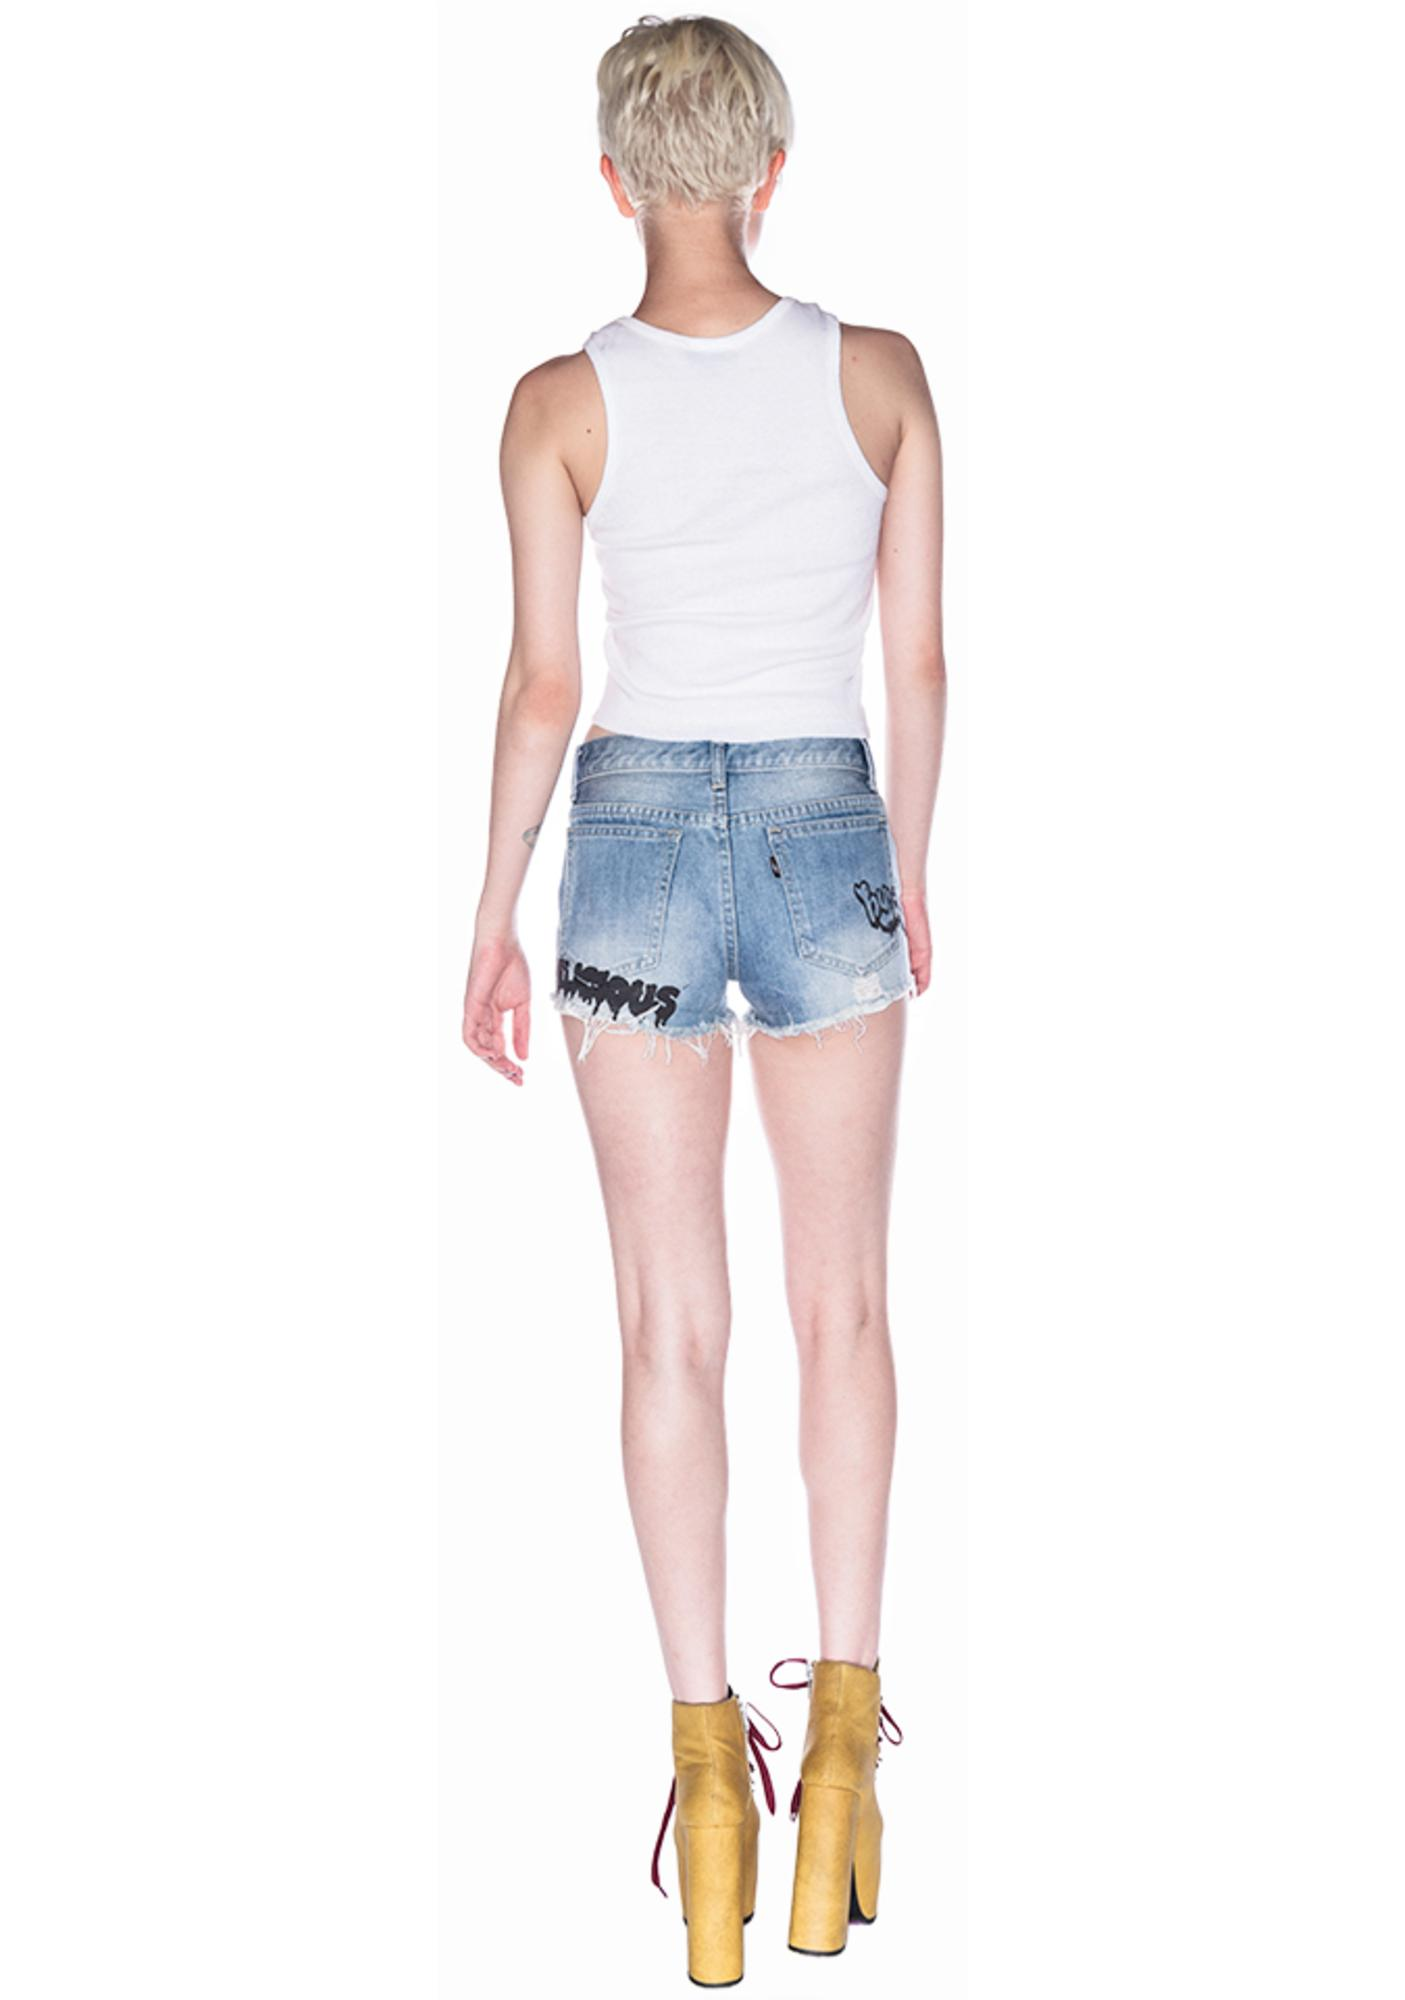 Joyrich Broadway Alley Shorts